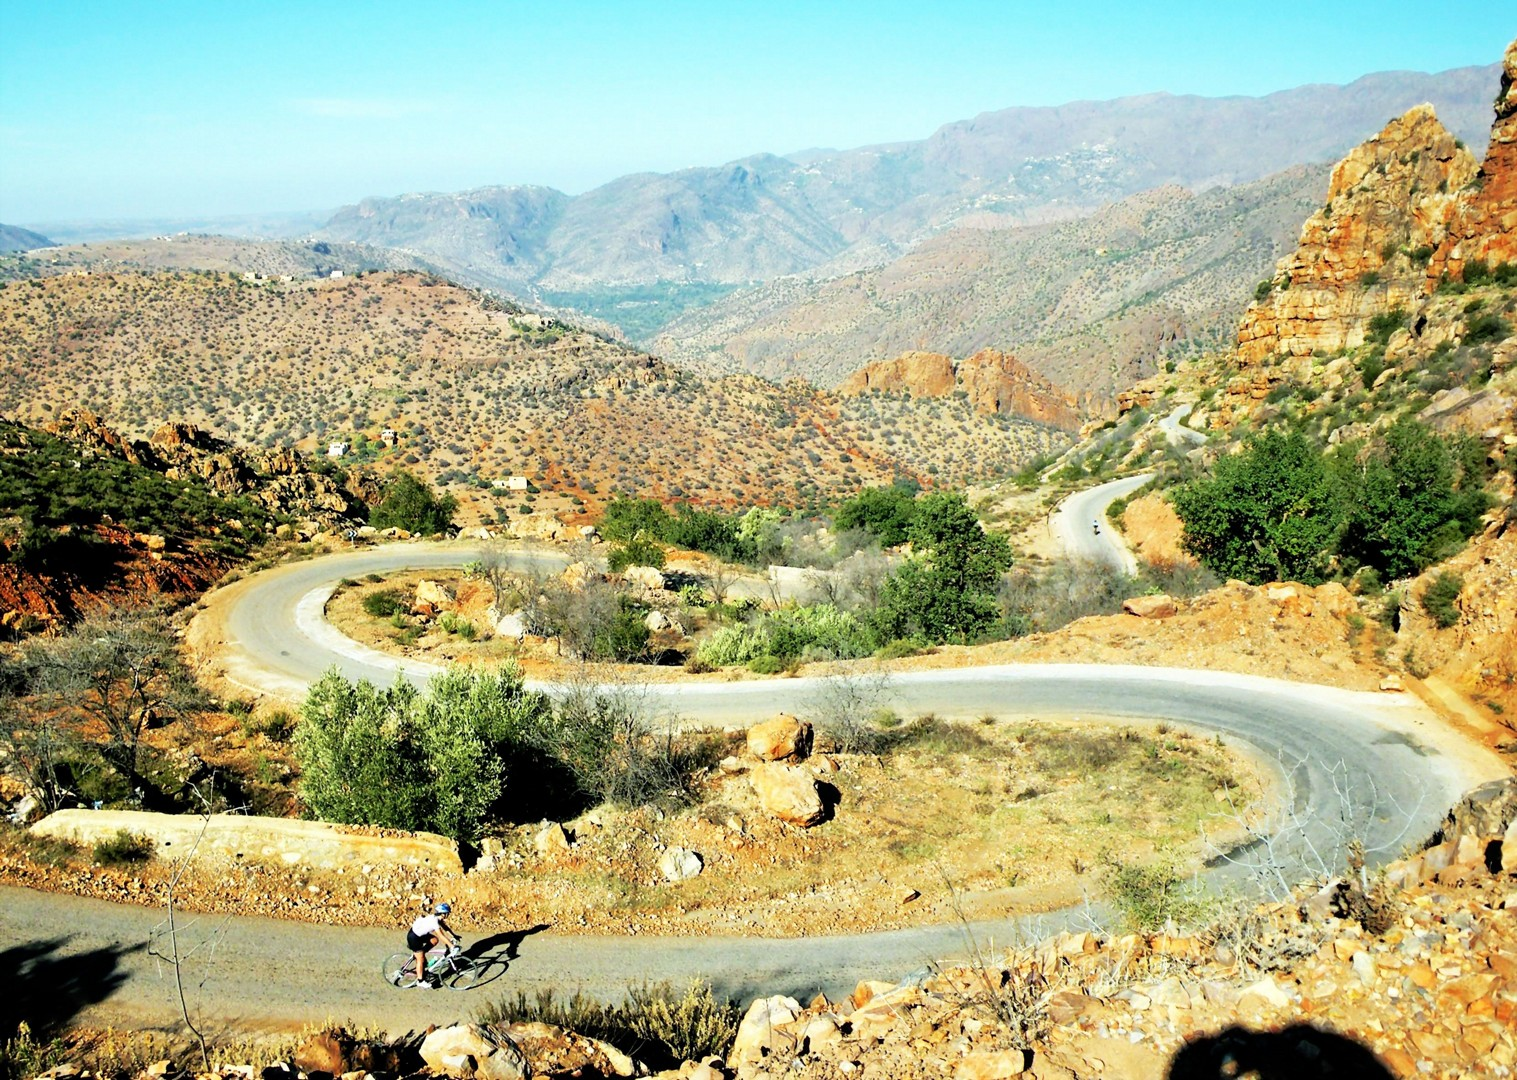 cycling-road-morocco-mountain-holiday.jpg - Morocco - Road Atlas - Road Cycling